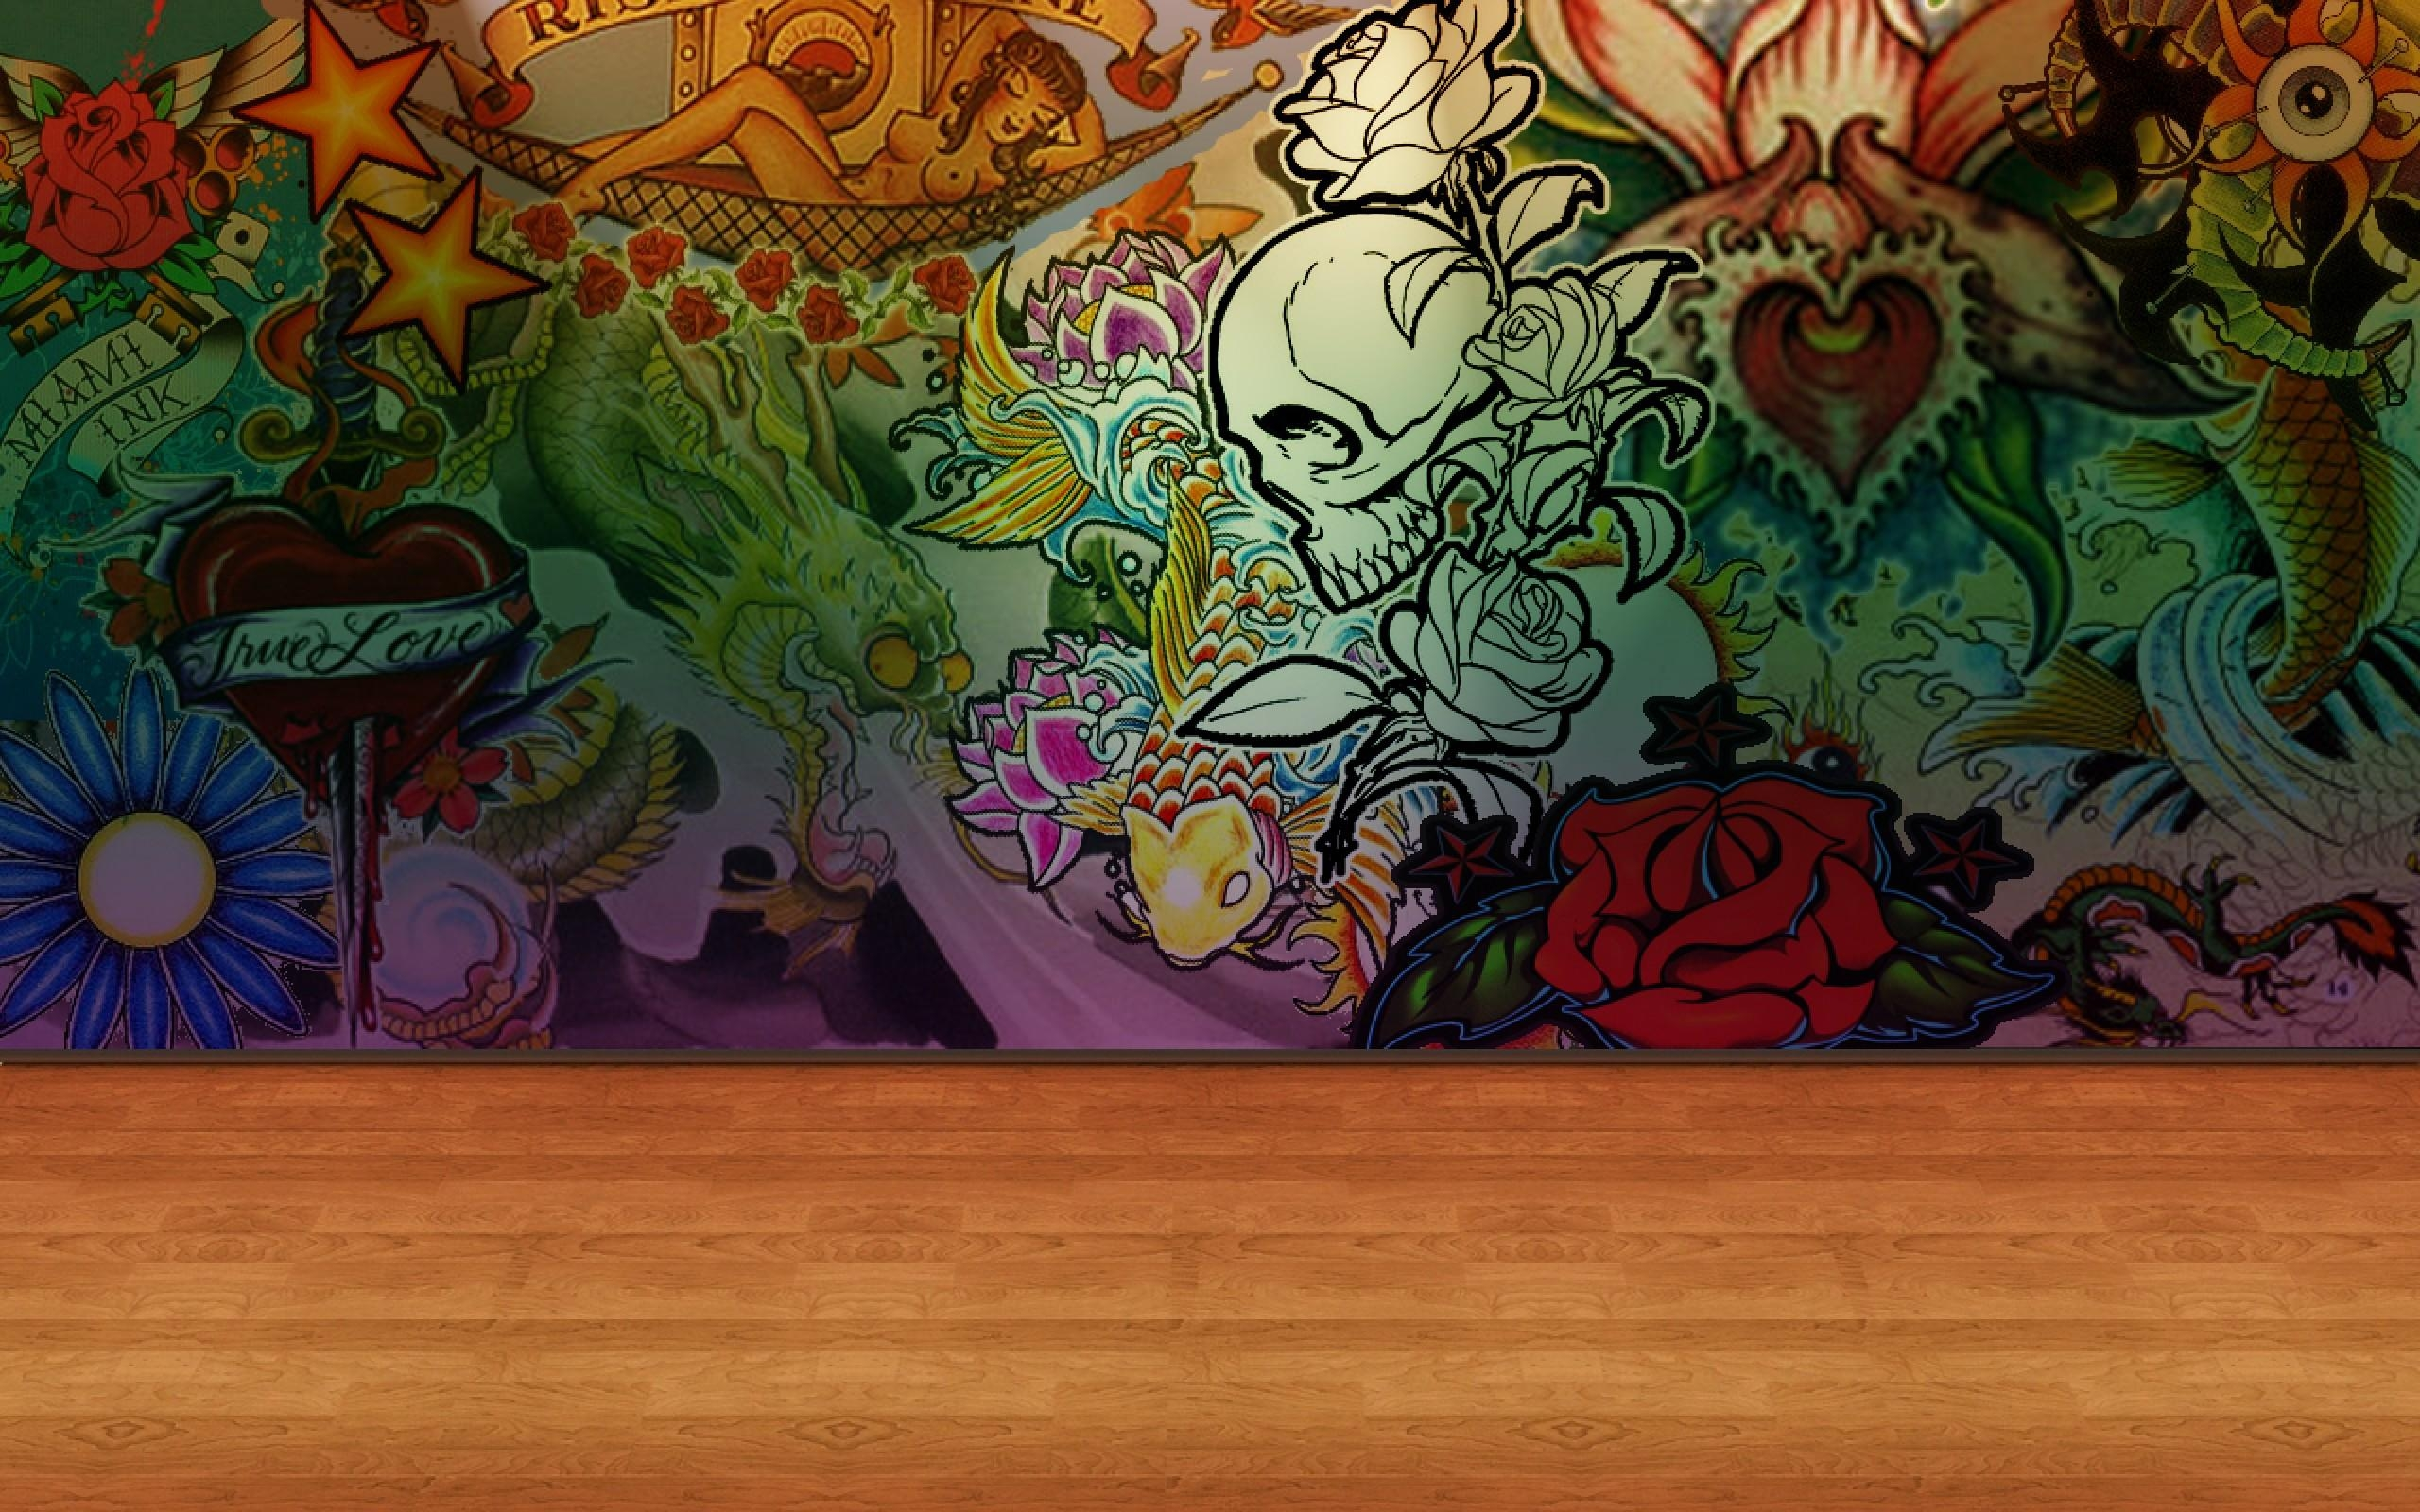 Tattoo Wall Rose Wallpaper Art For Desktop Mob #7939 Wallpaper Pertaining To Tattoo Wall Art (Image 16 of 20)